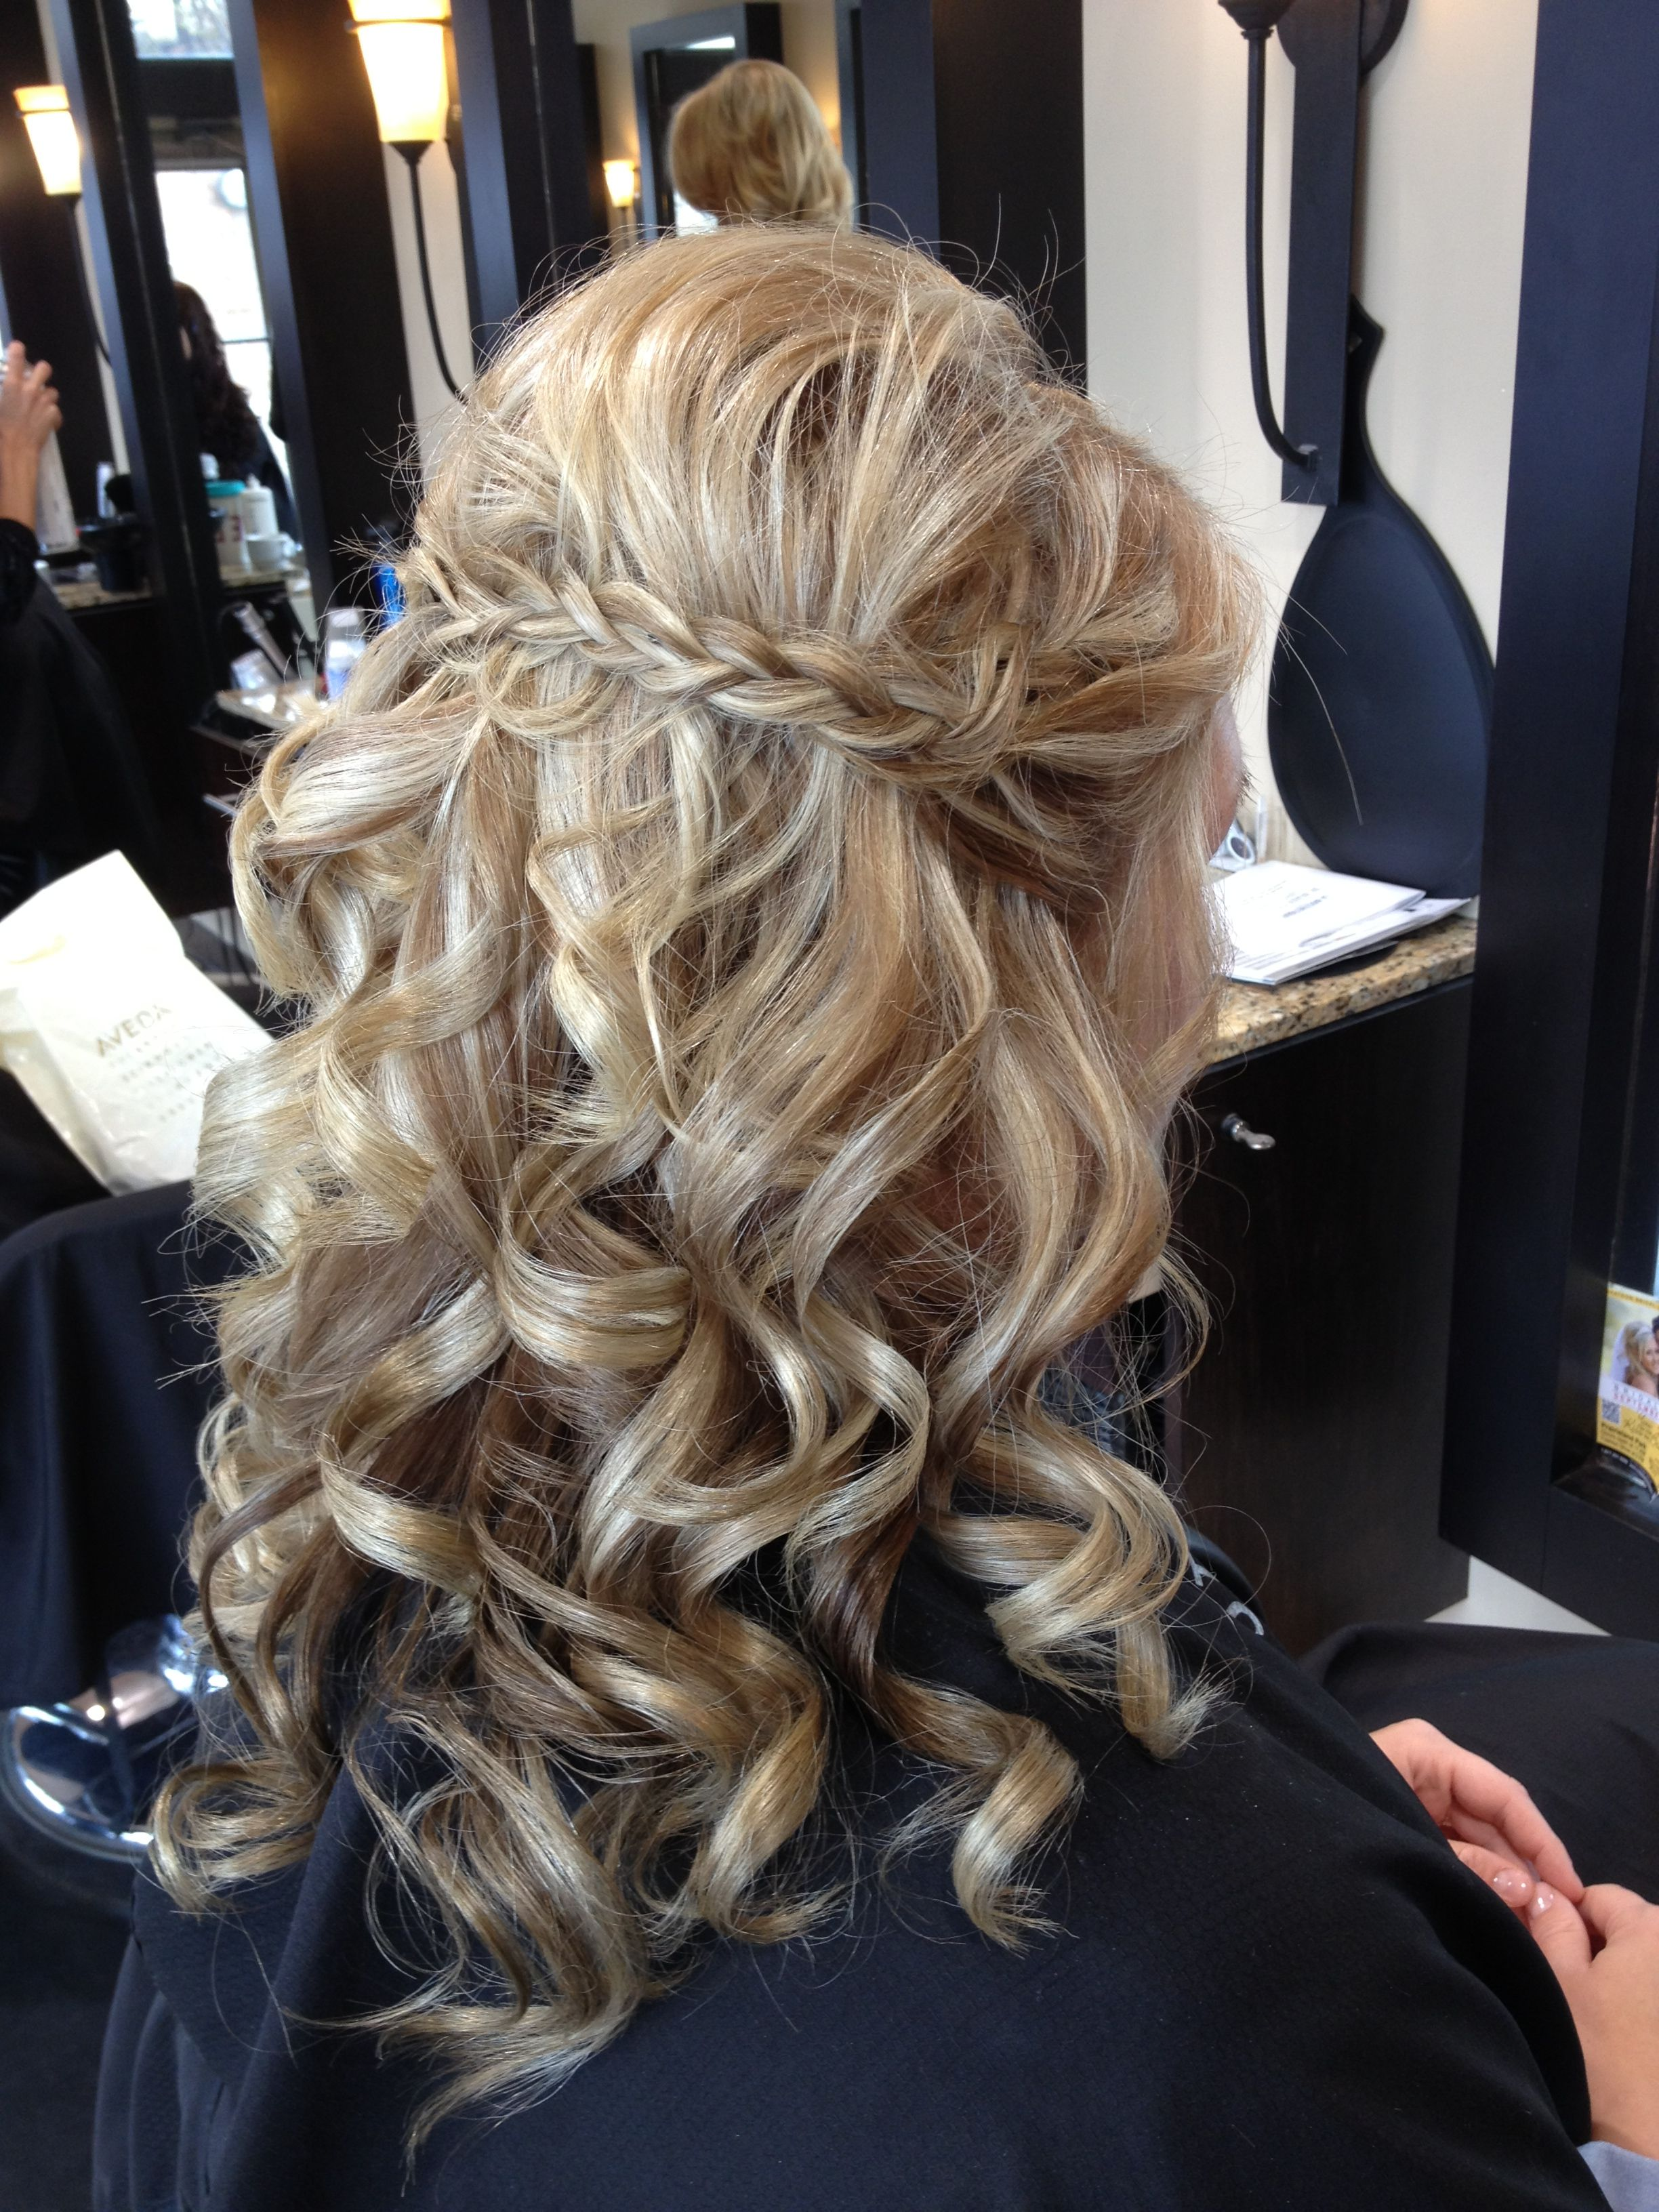 Cute or even bigger waves rather than tight curls love the braid